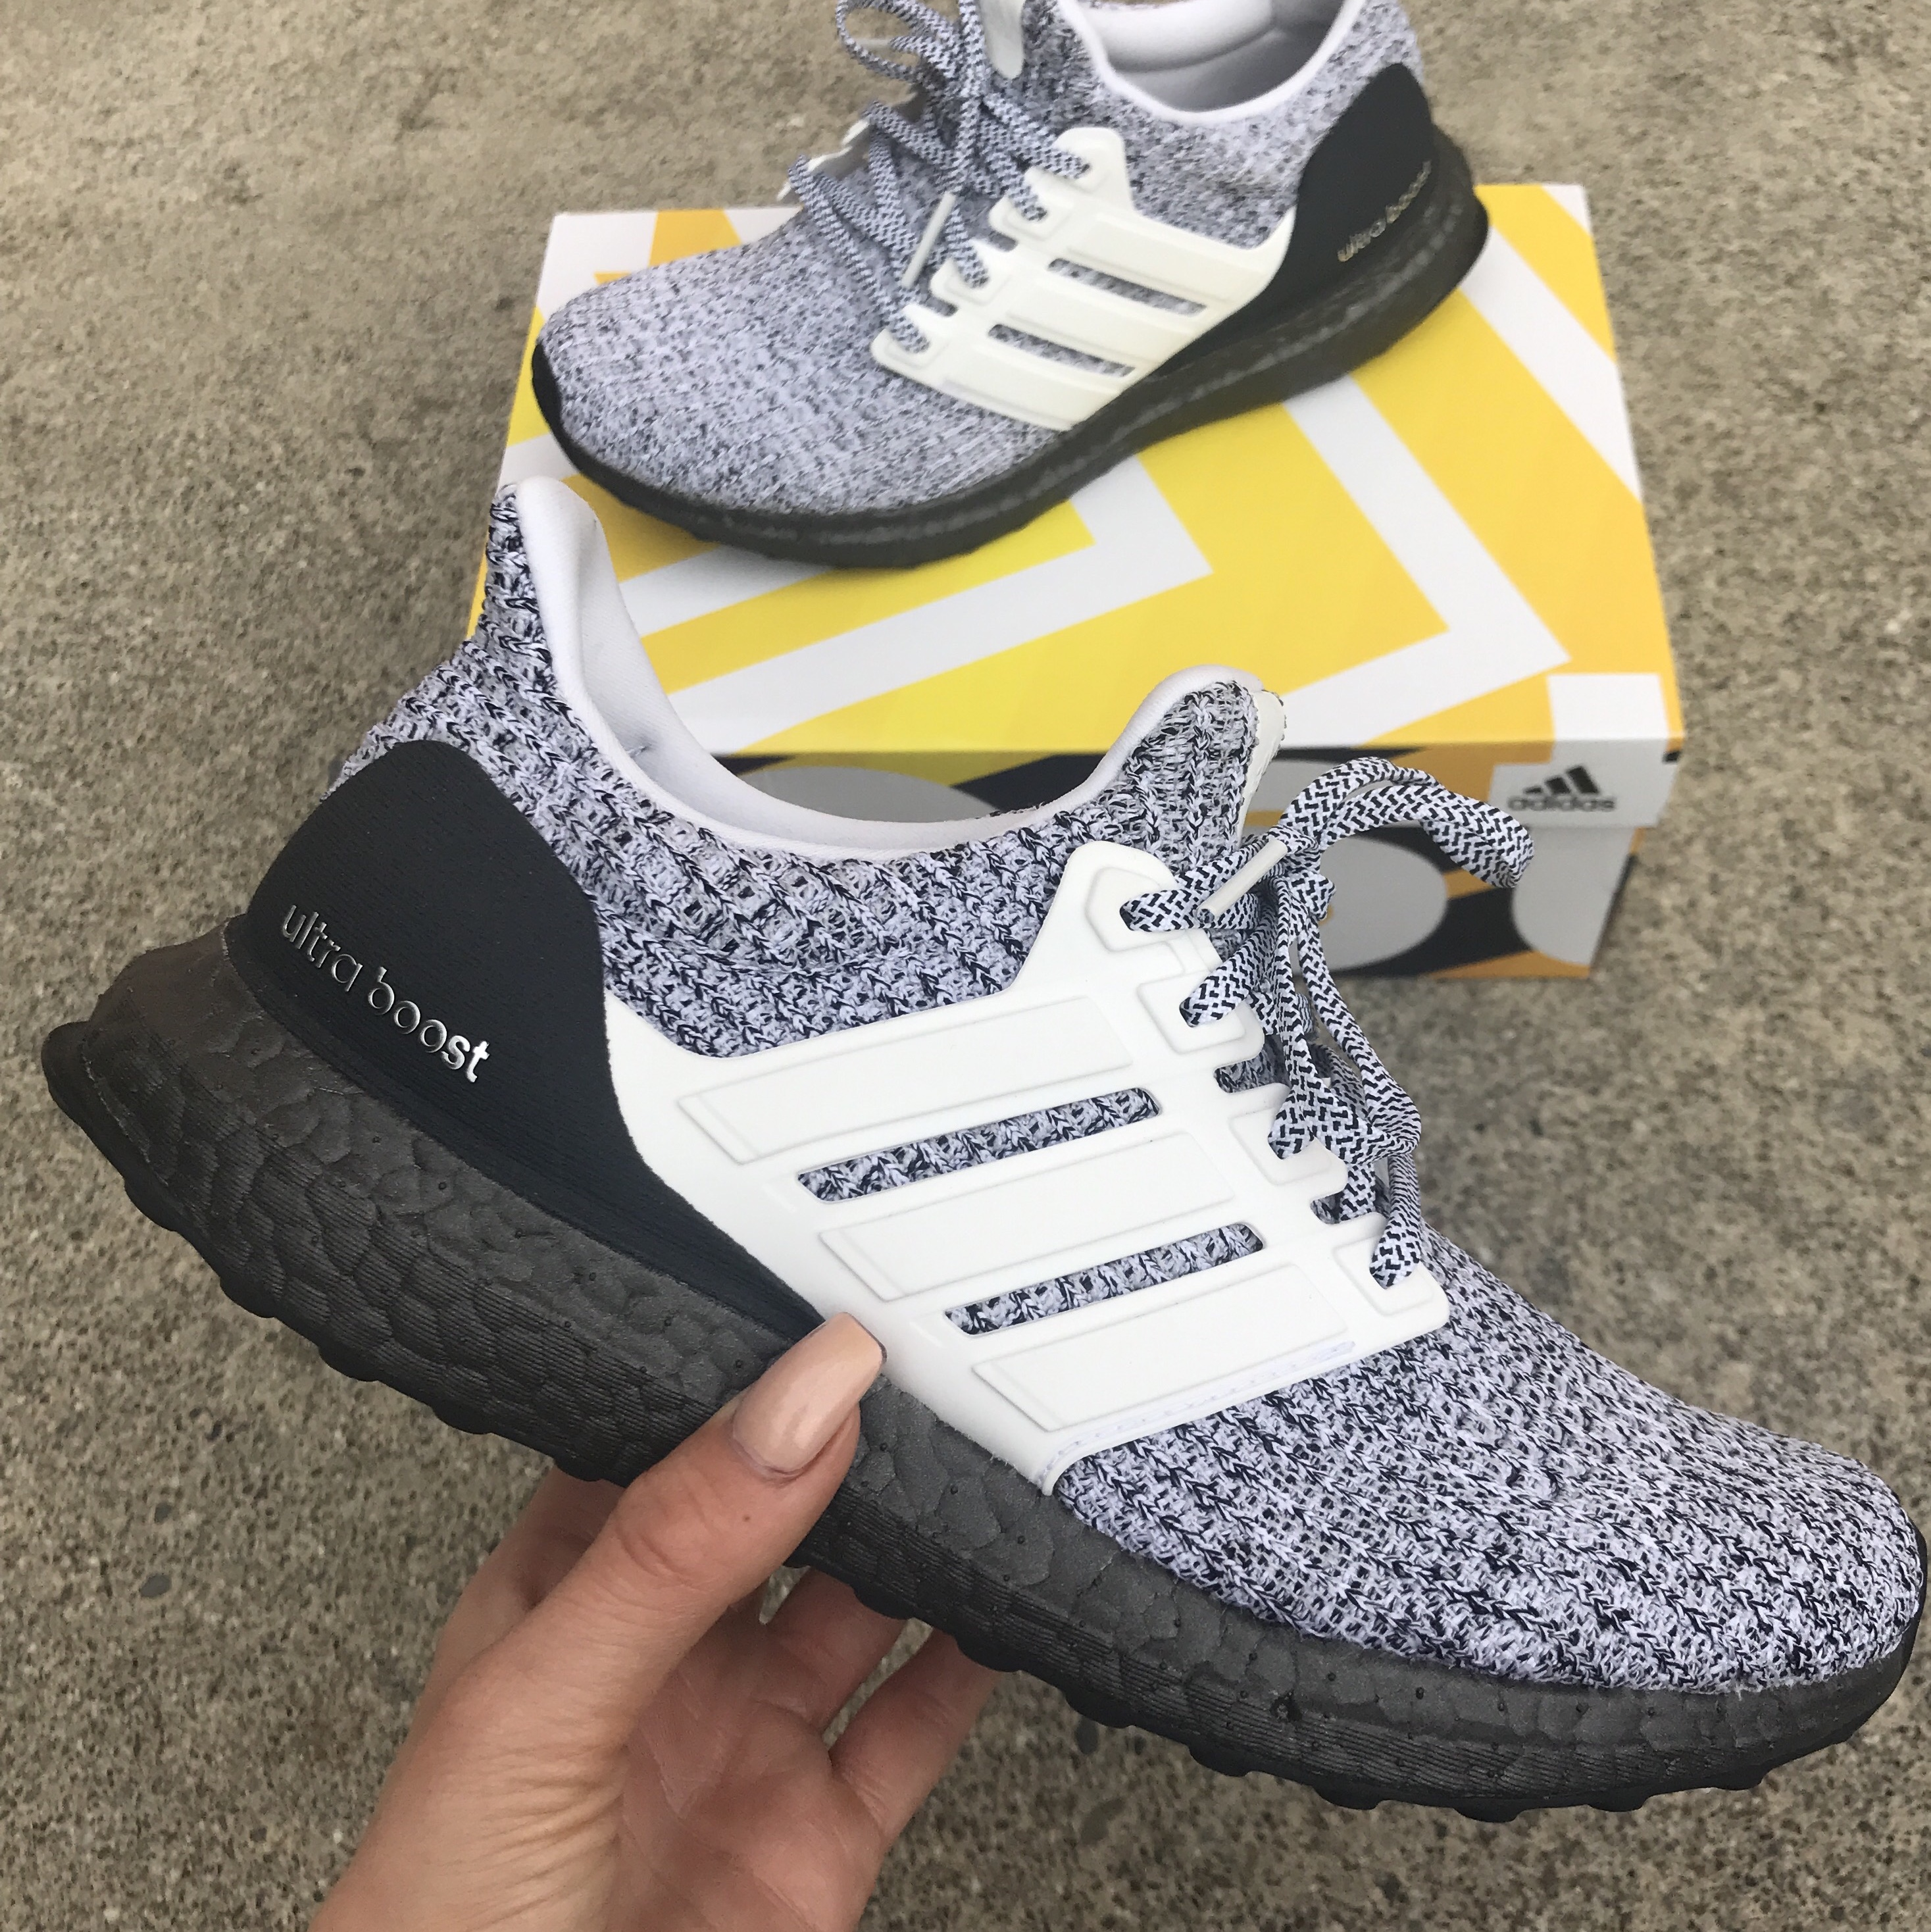 timeless design 72fcc c8170 Adidas Ultra Boost 4.0 Oreo Worn about 10 times... - Depop